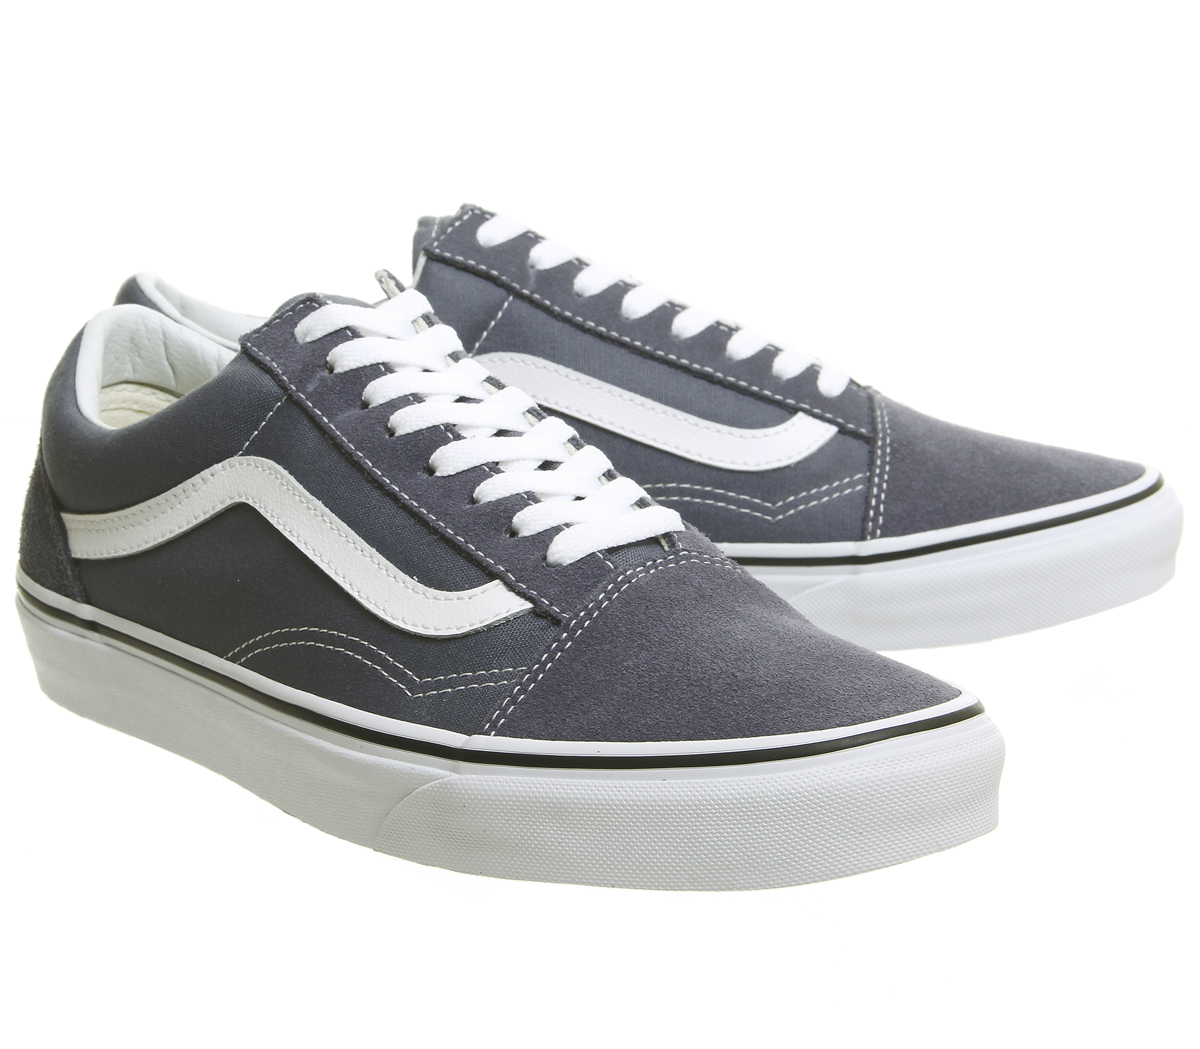 bddb2adf756648 Mens Vans Old Skool Trainers Grisaille White Trainers Shoes